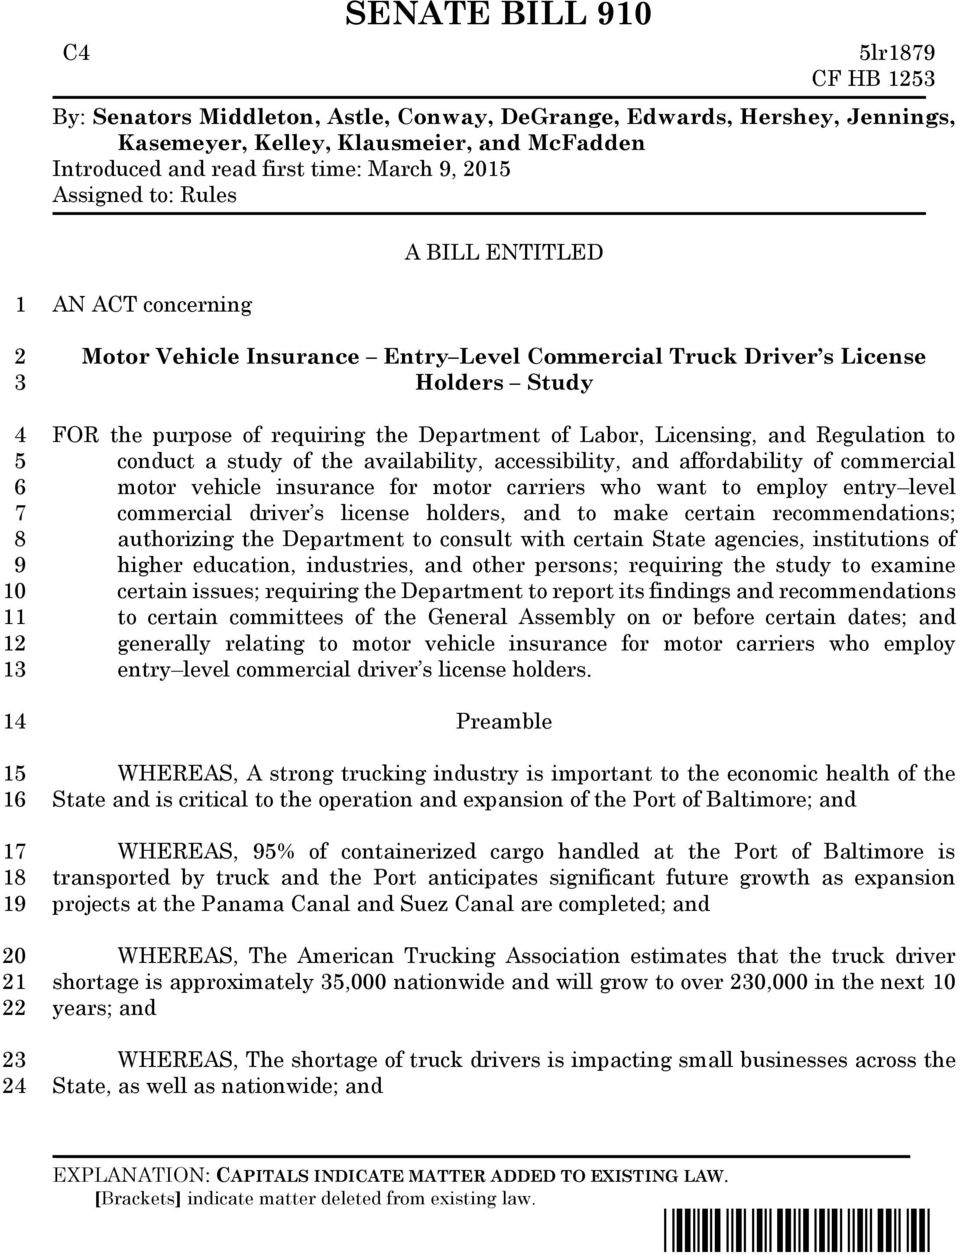 Regulation to conduct a study of the availability, accessibility, and affordability of commercial motor vehicle insurance for motor carriers who want to employ entry level commercial driver s license